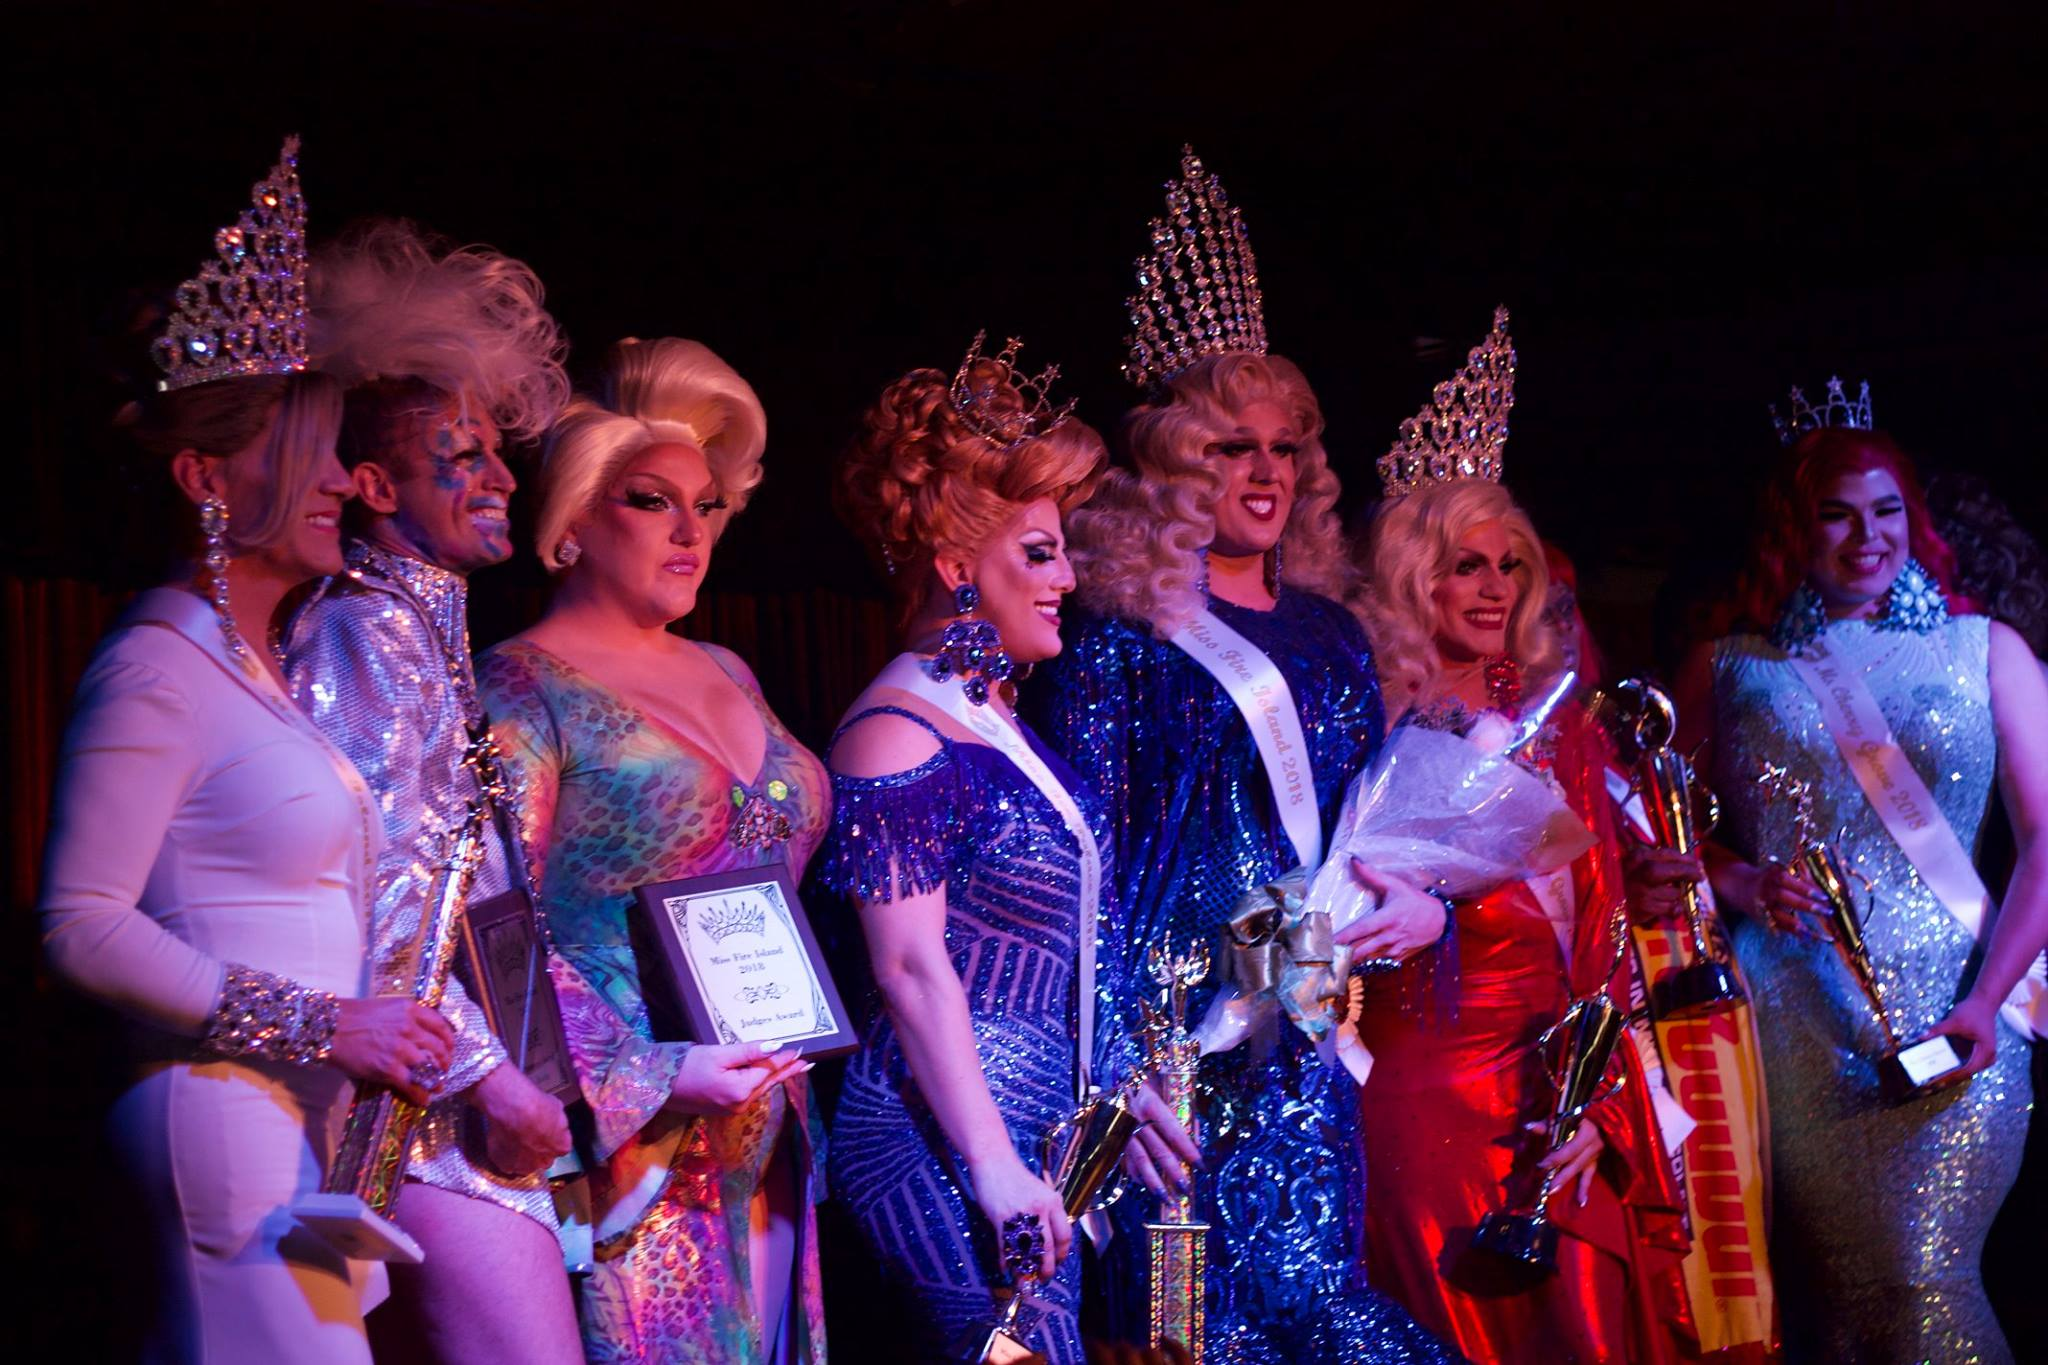 Miss Fire Island Pageant contestants dressed up on stage